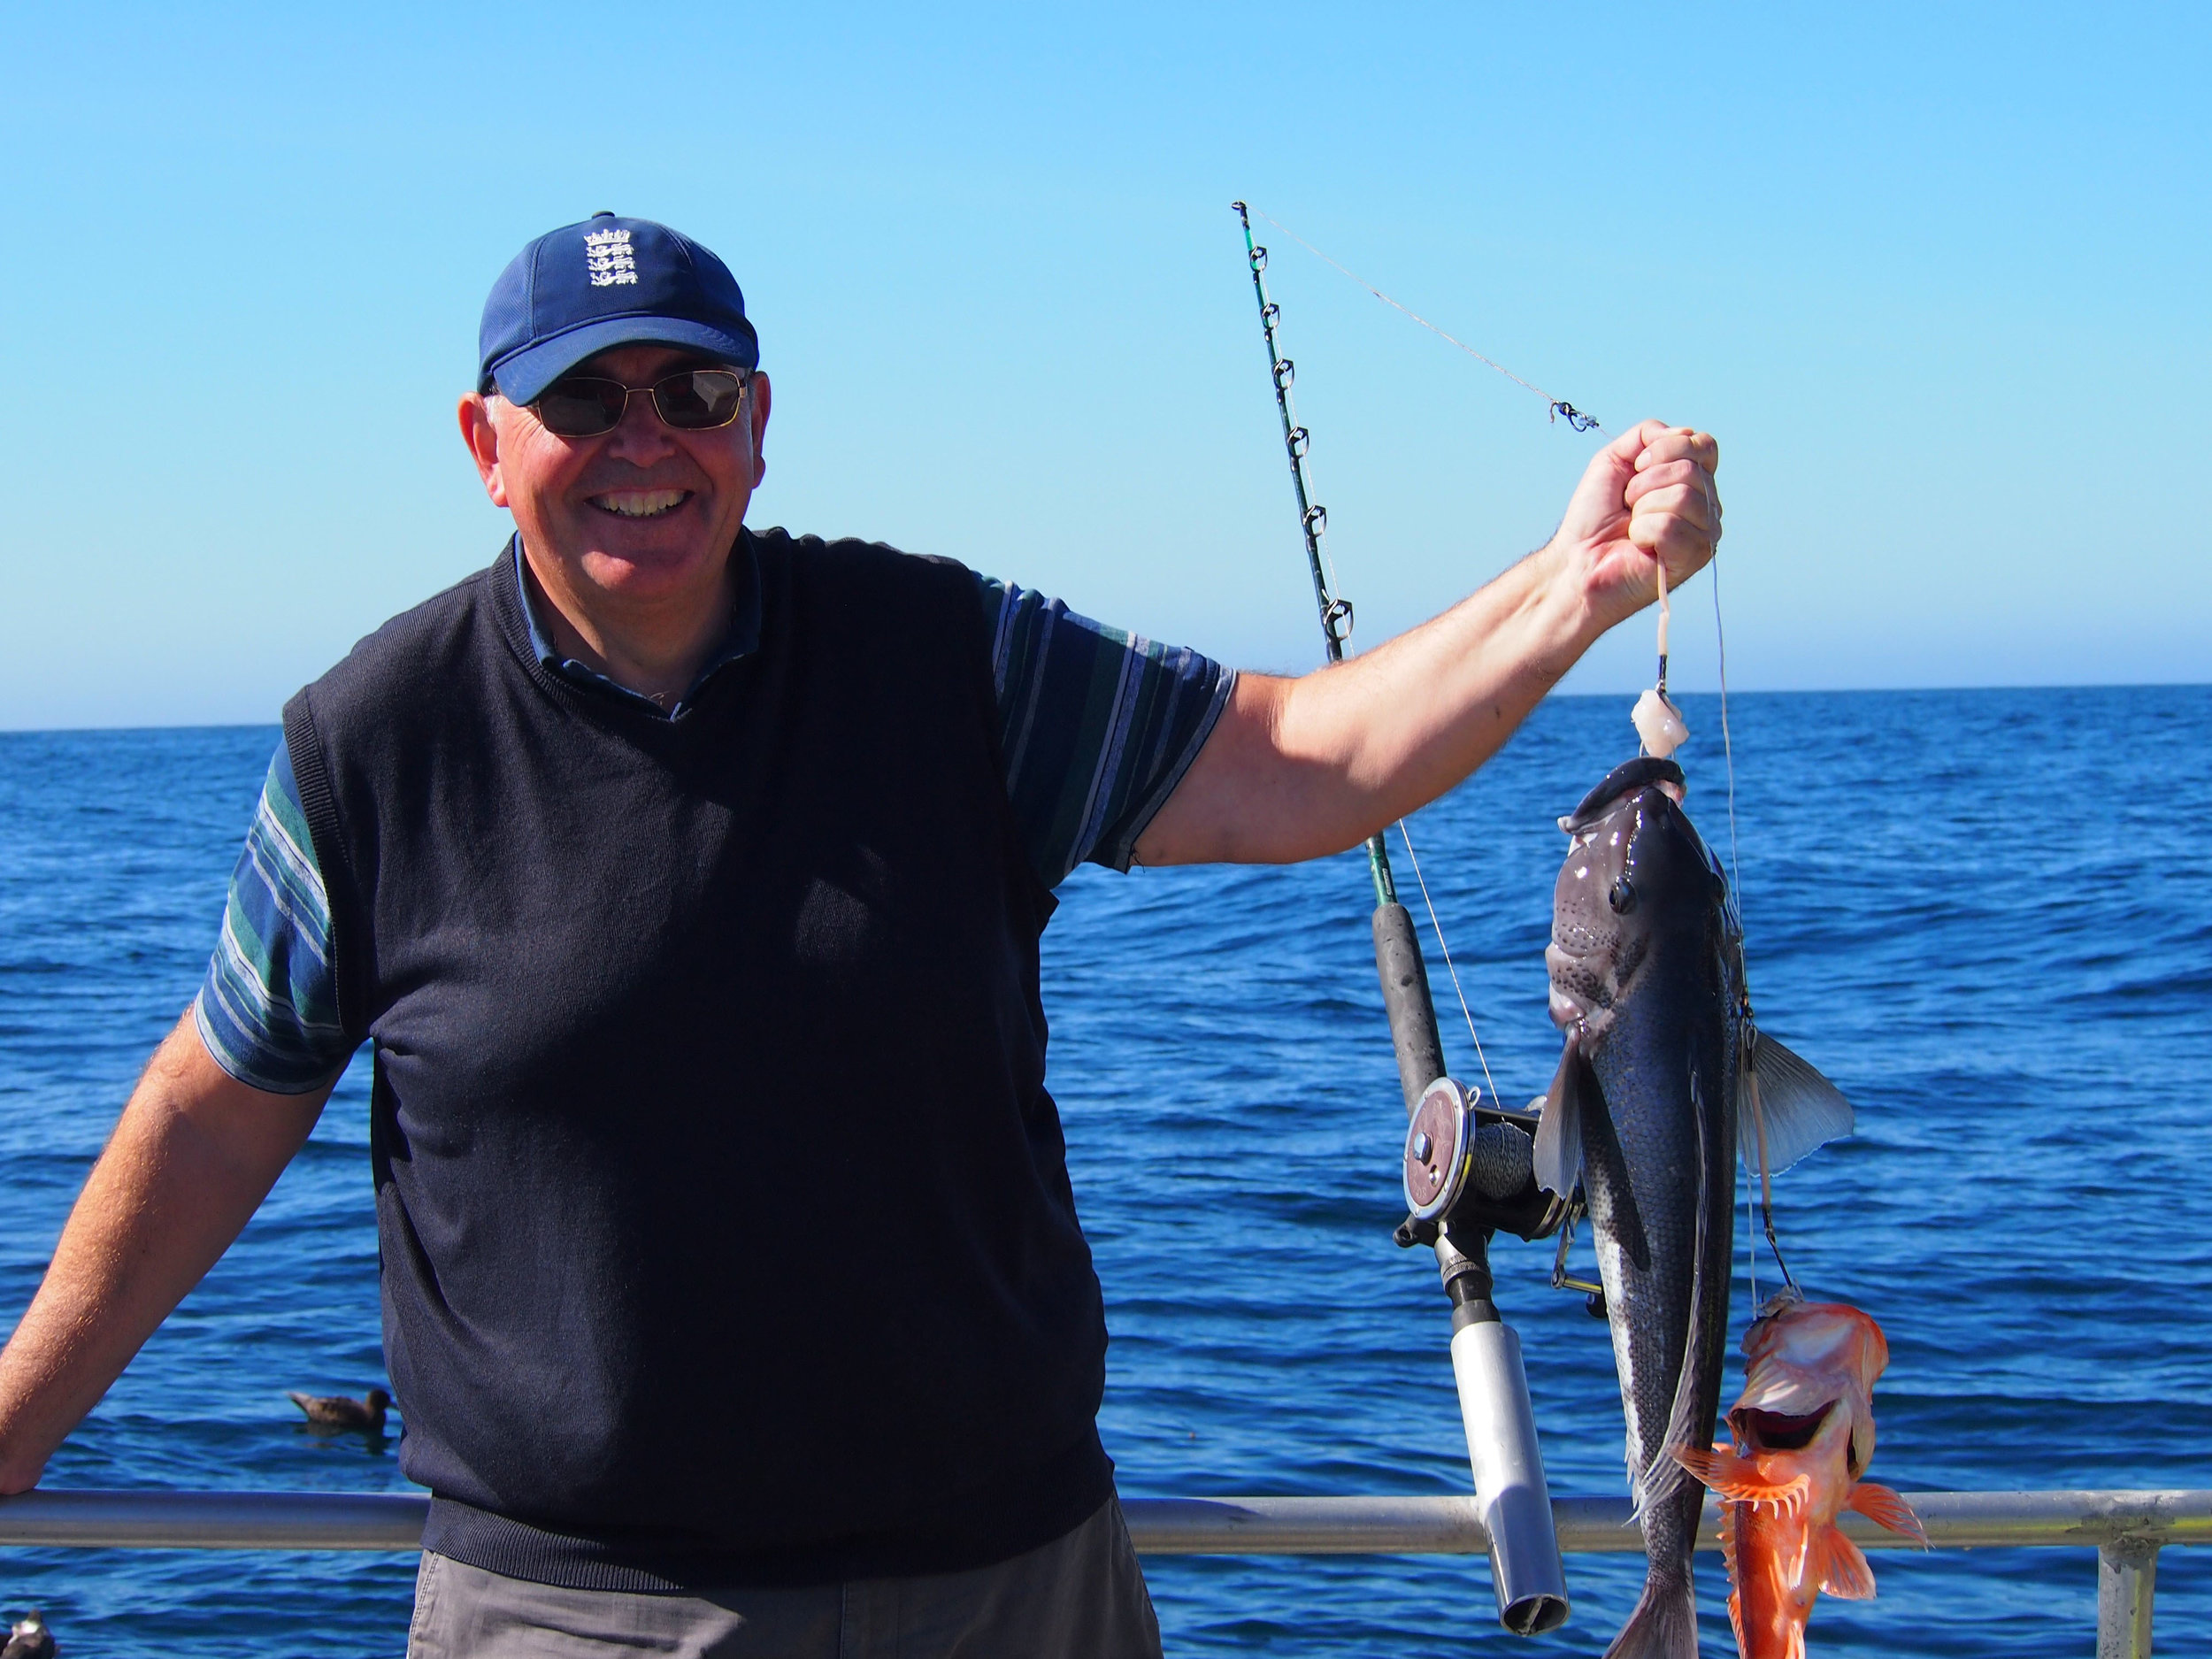 Catch a husge blue cod on our fishing trips